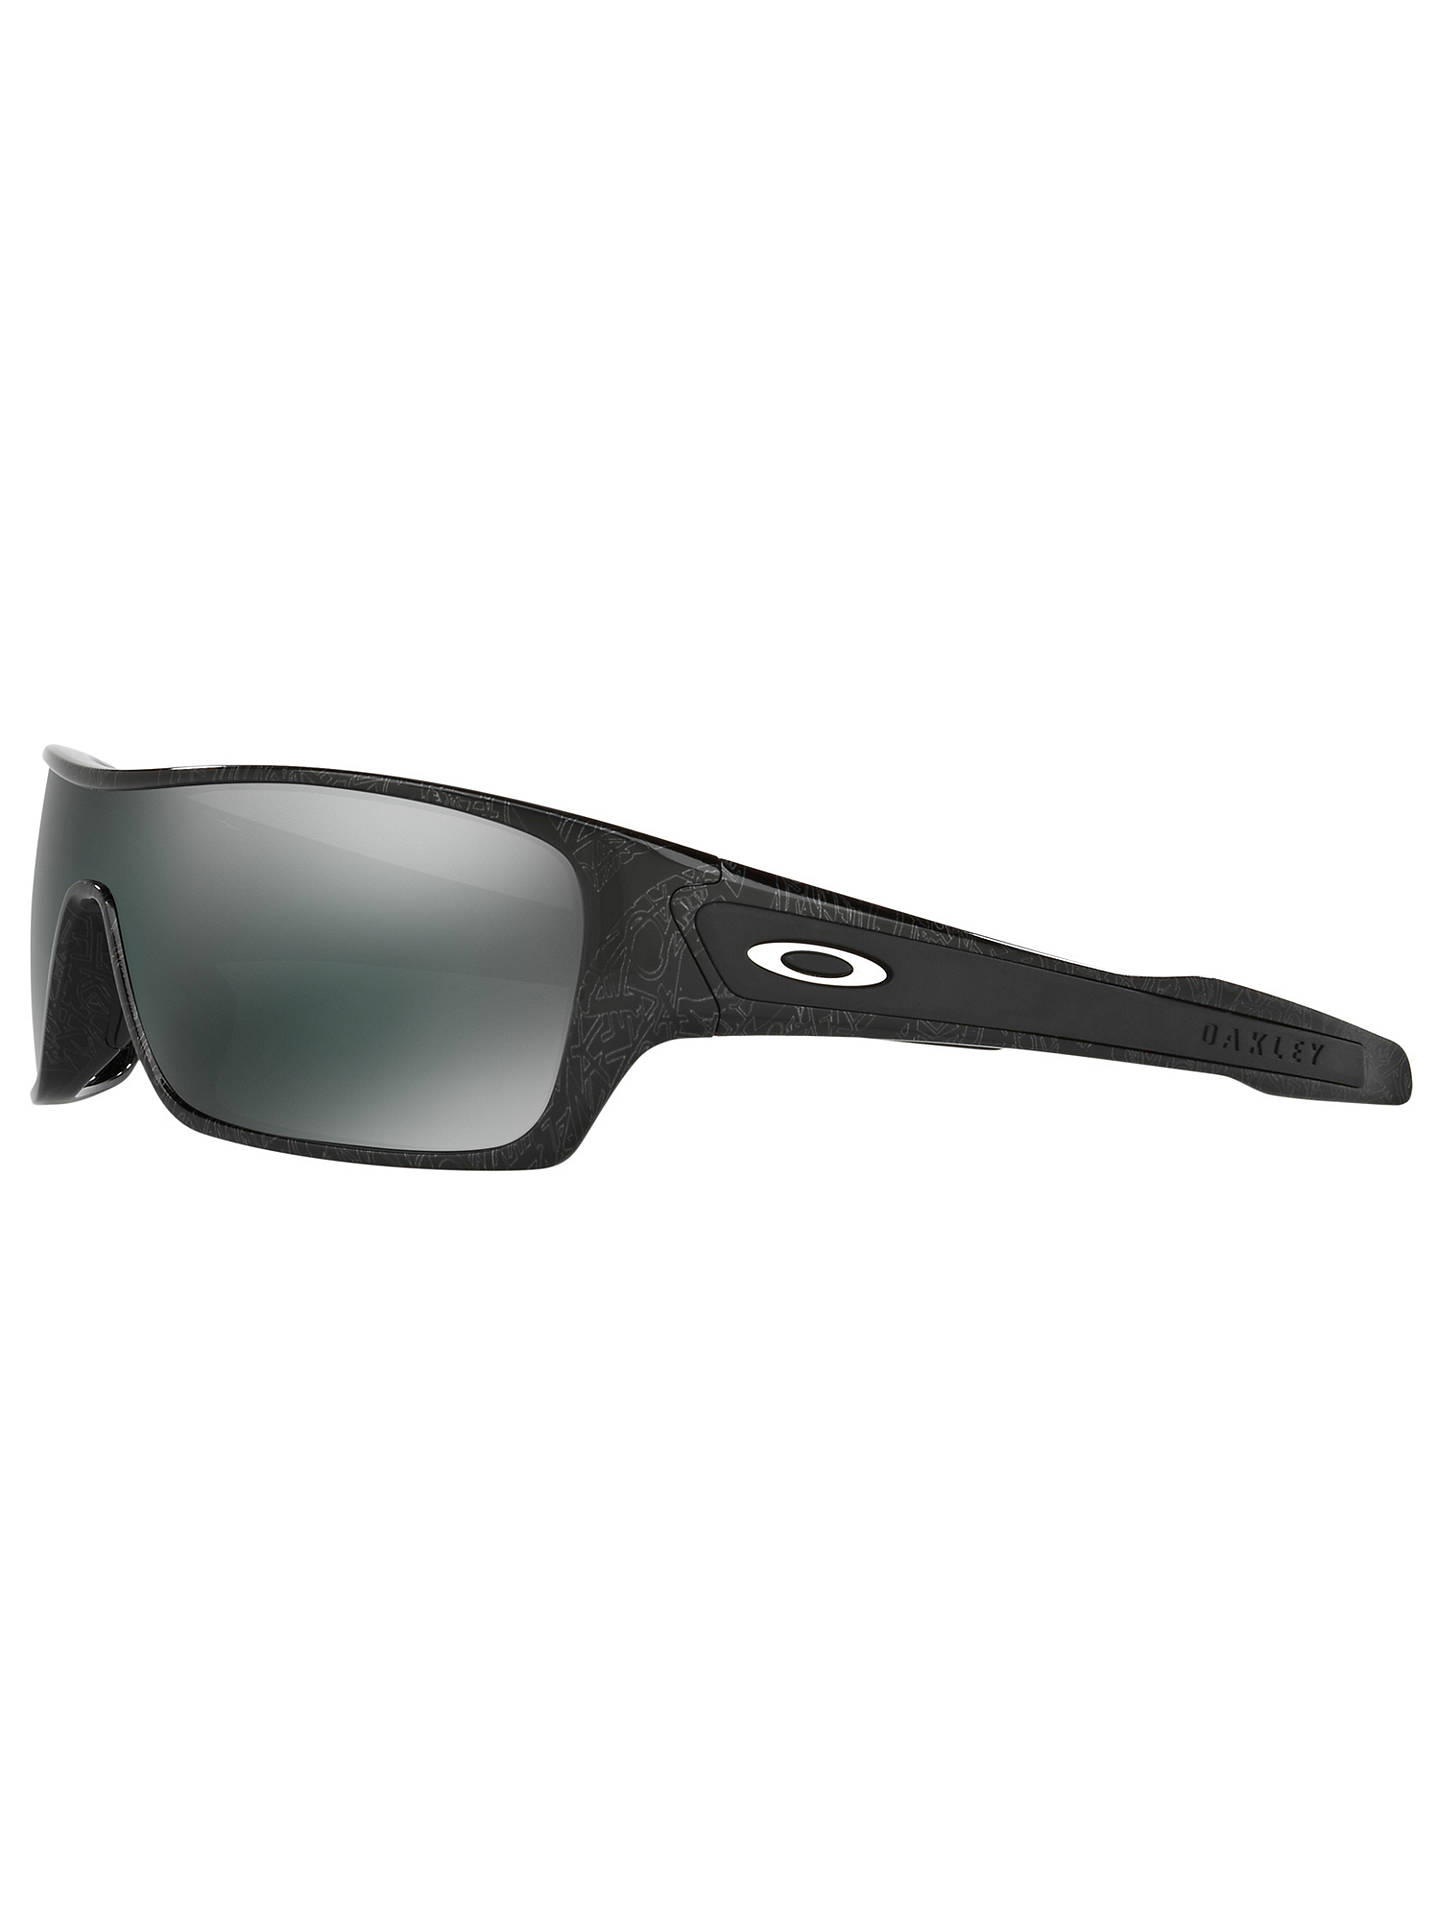 5a249679078 ... BuyOakley OO9307 Turbine Rotor Rectangular Sunglasses